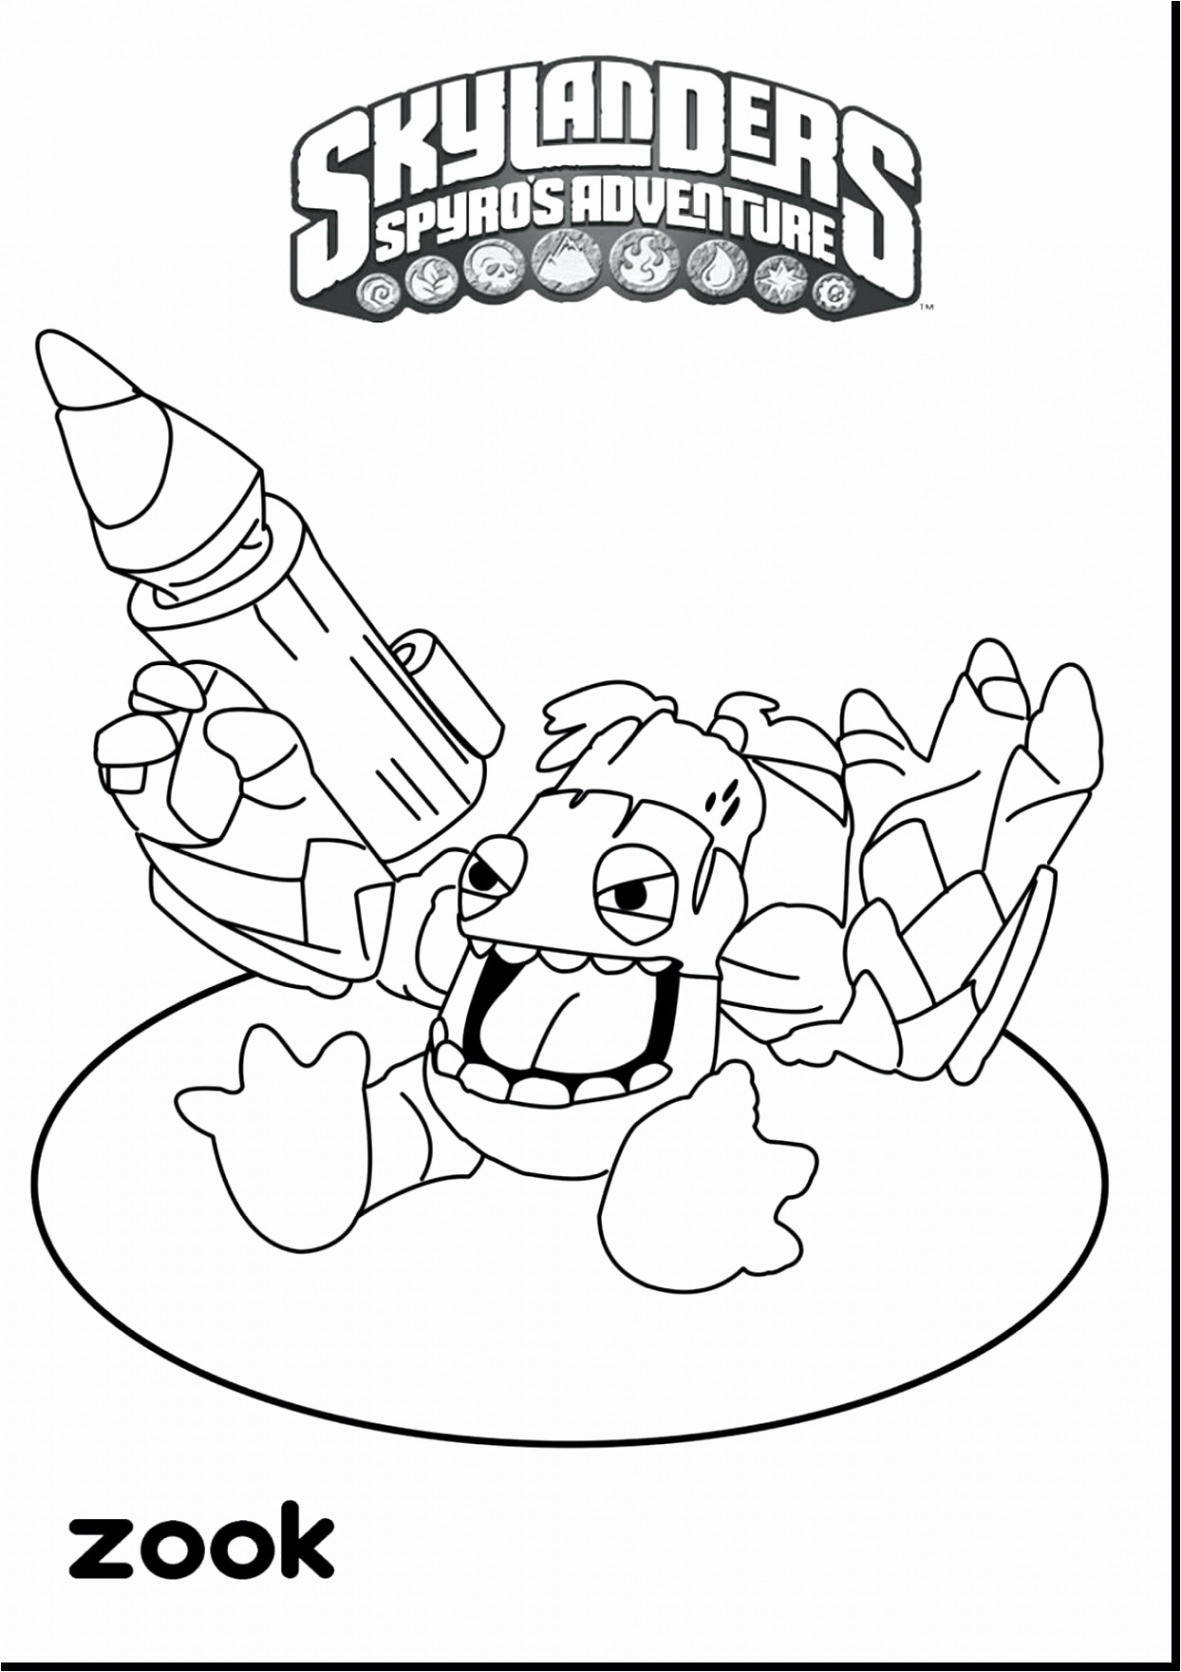 Christmas Colouring Pages Easy With Printable Coloring Stockings Fresh Free